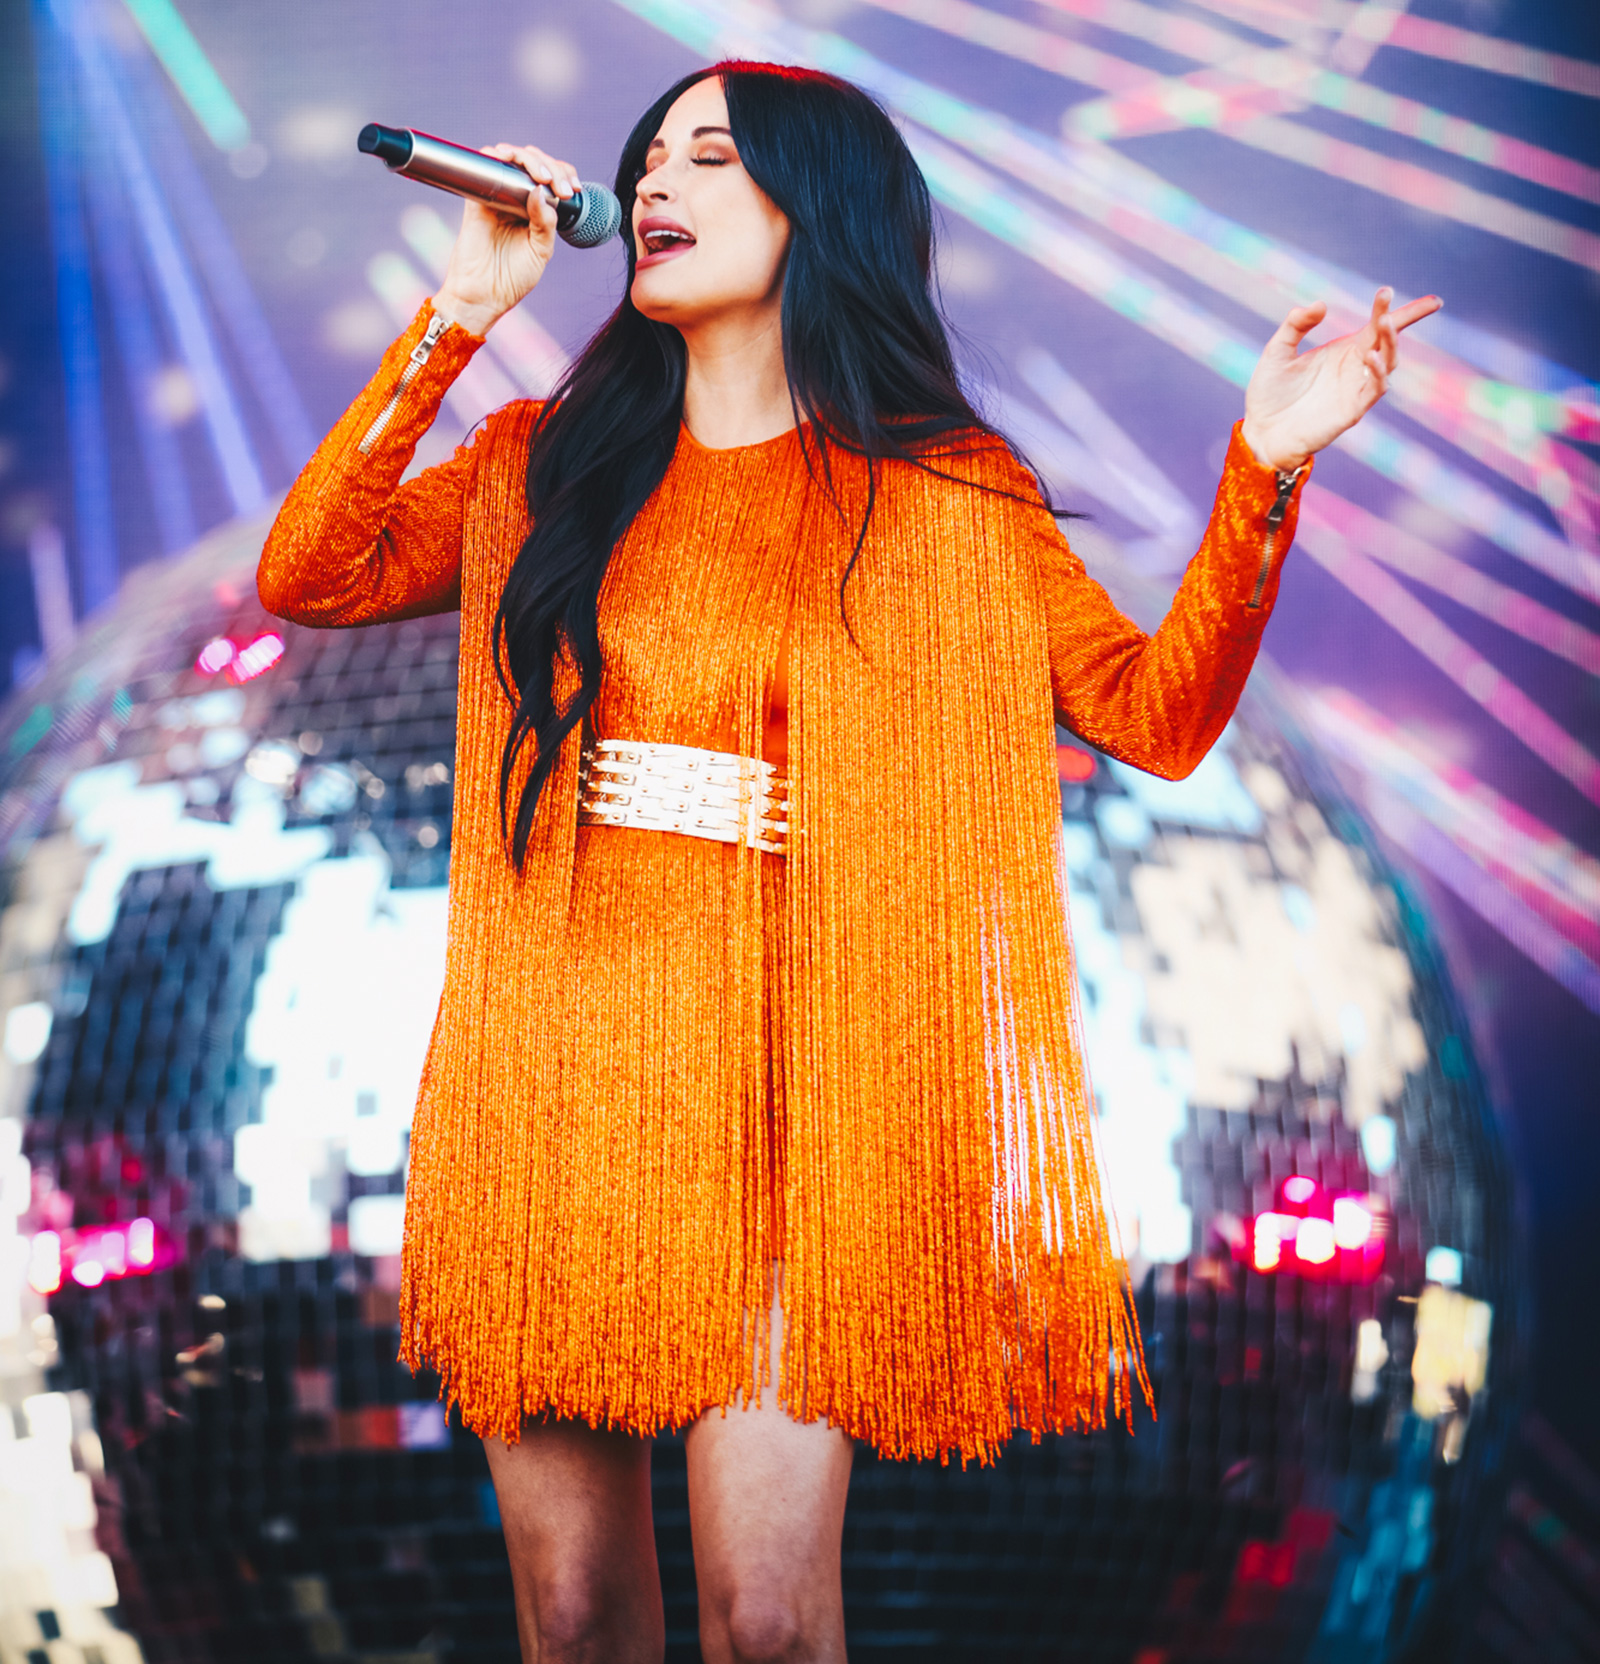 Kacey Musgraves performs on Coachella Stage during the 2019 Coachella Valley Music And Arts Festival on April 12, 2019